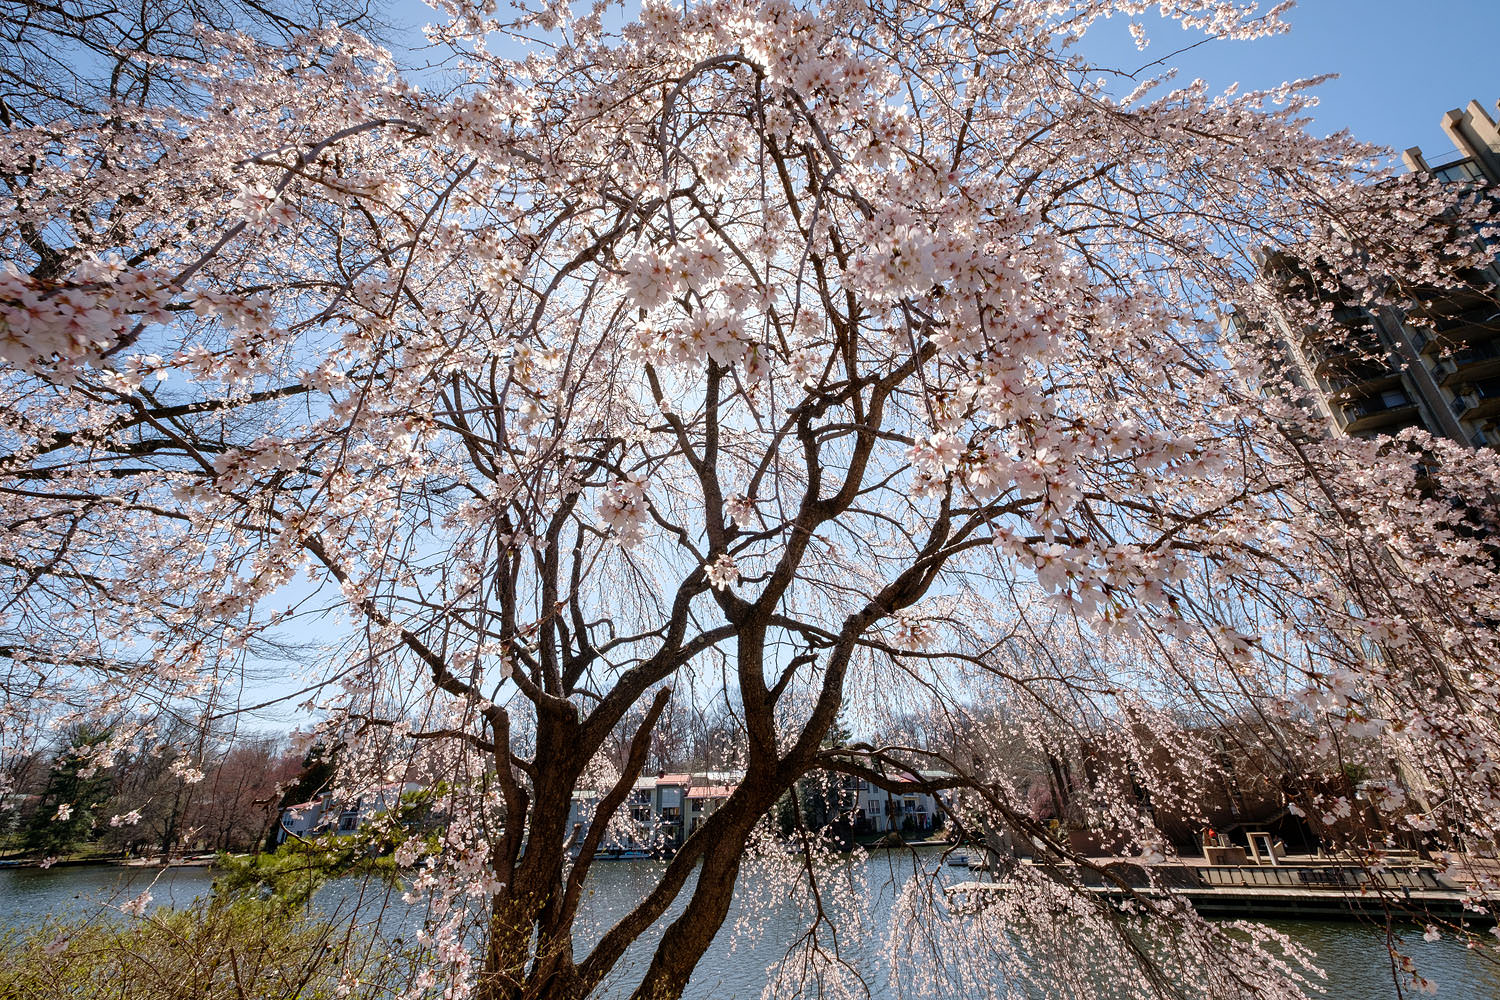 A weeping cherry blossom tree at Lake Anne in Reston, Virginia